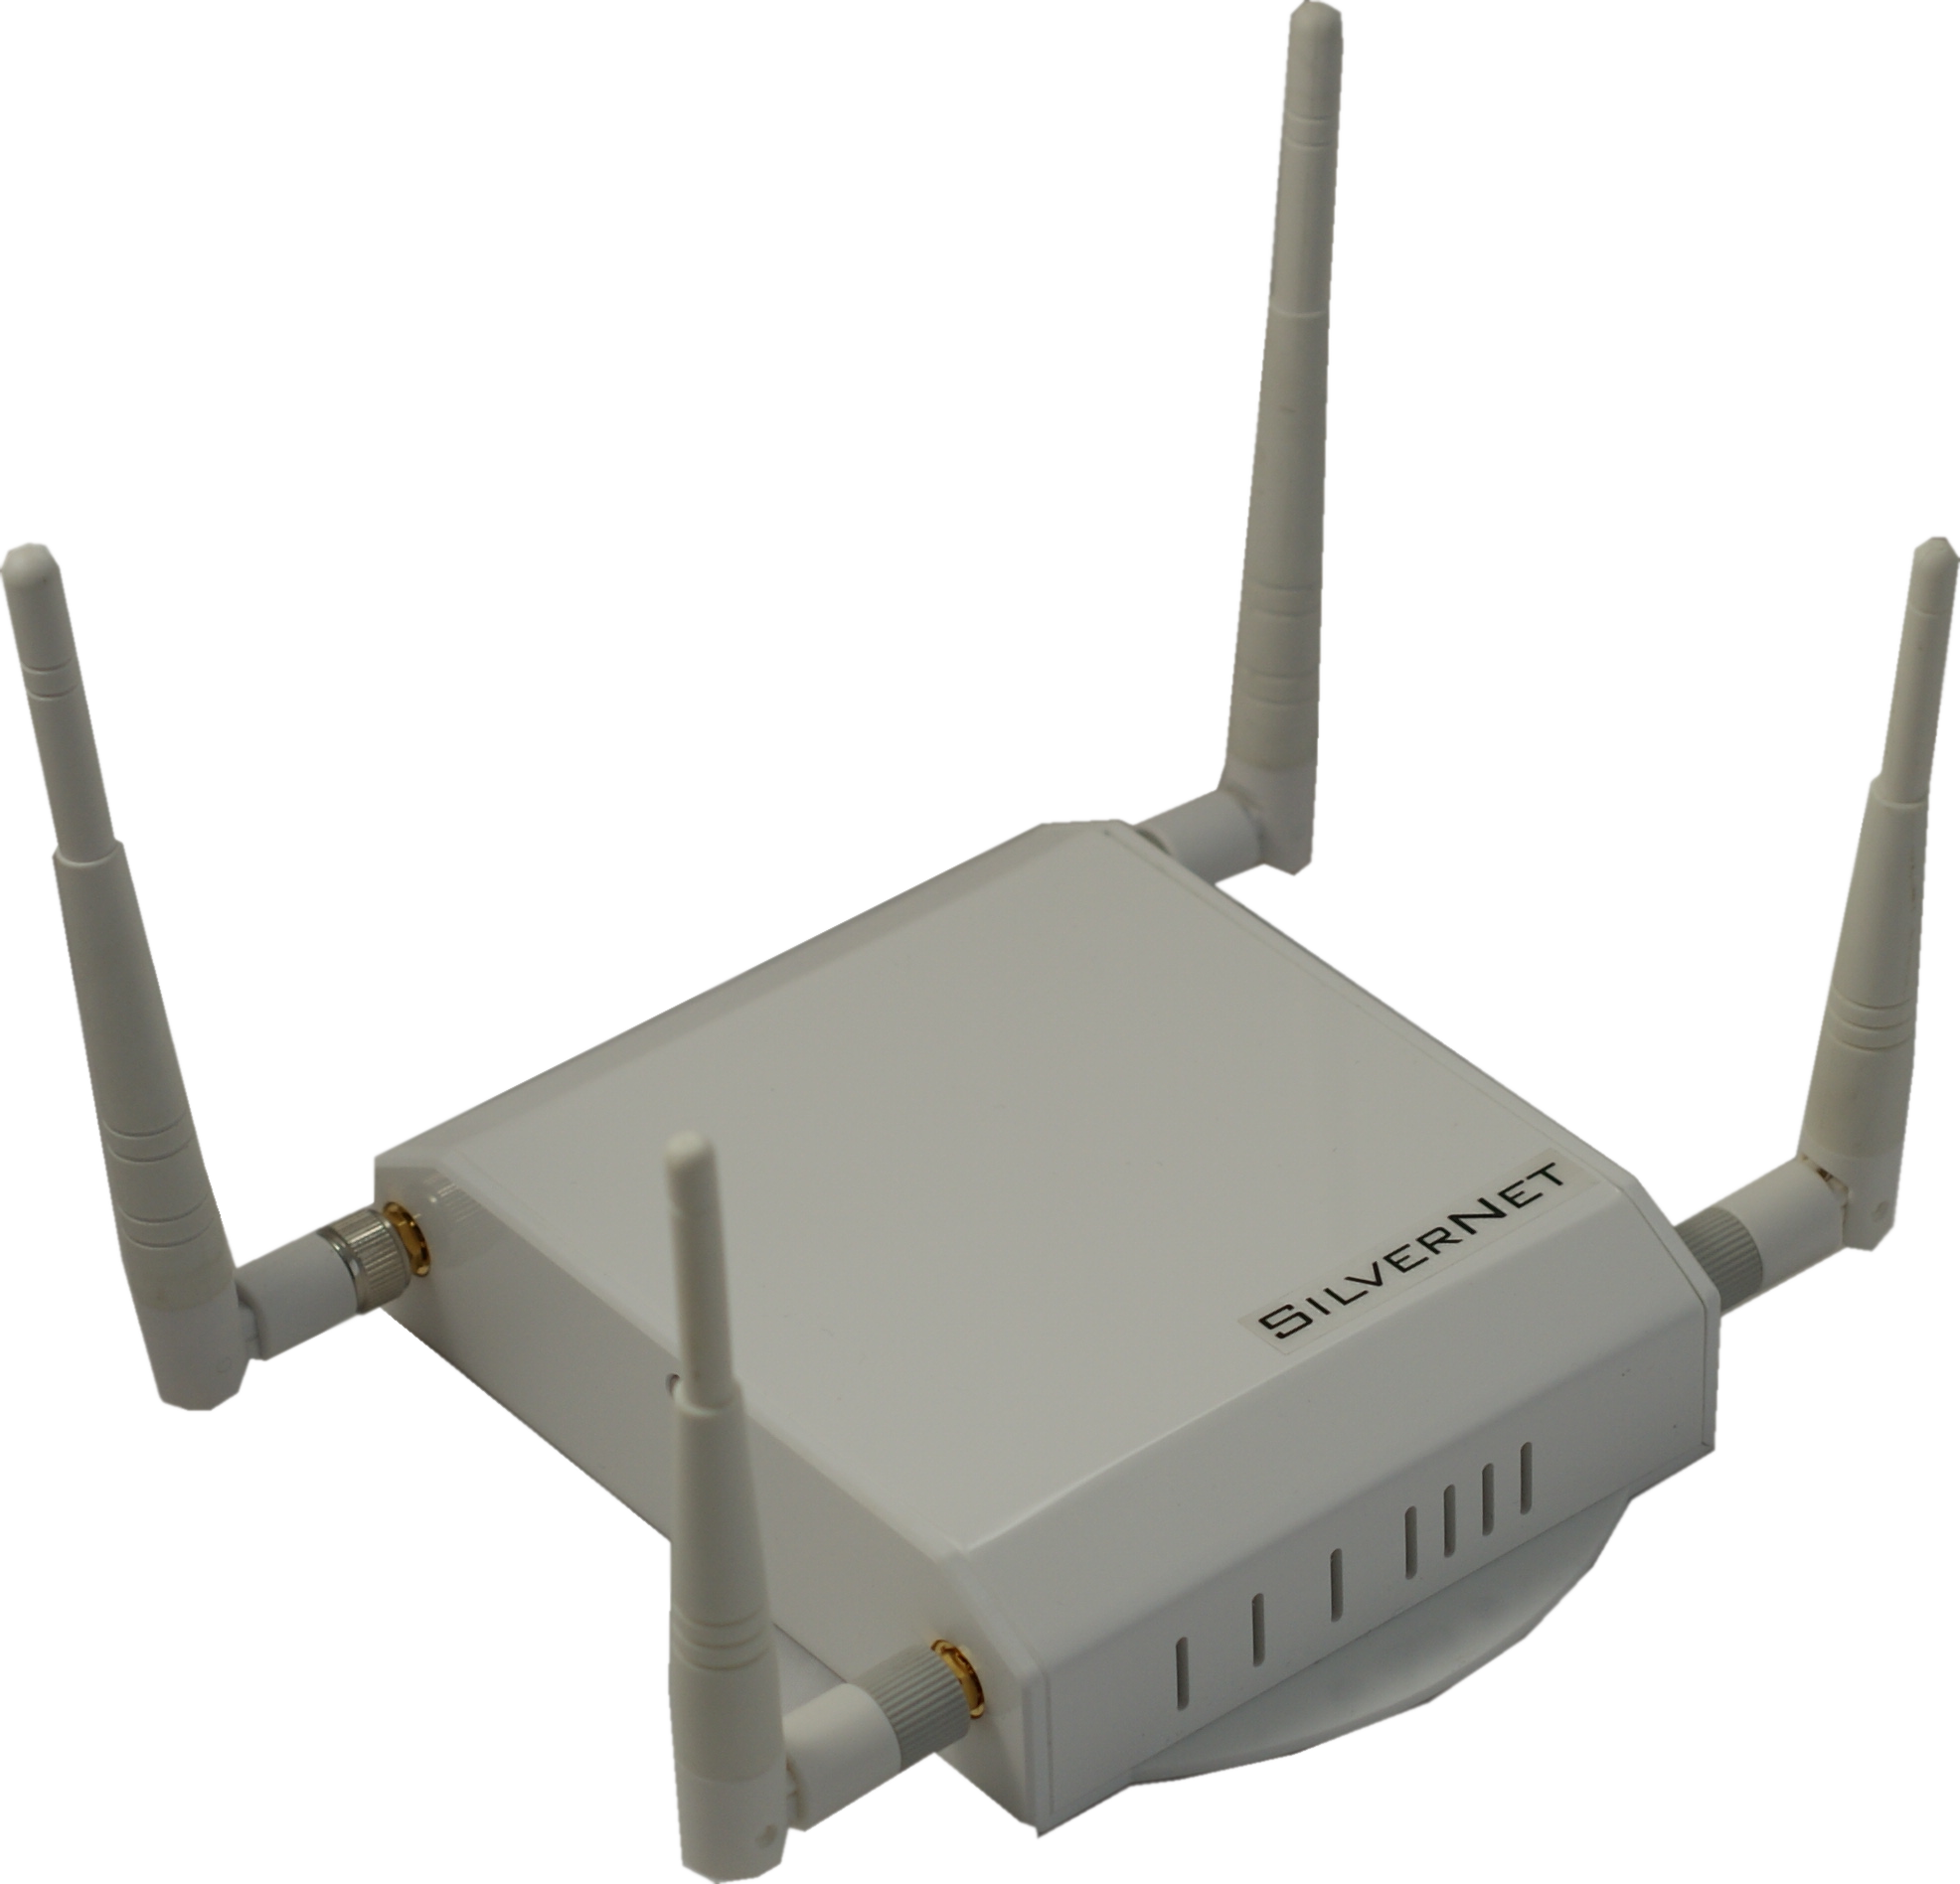 300Mbps abgn Indoor Mesh Node, SilverCloud Management and PoE. Built in Quad antennas. Bridge and AP